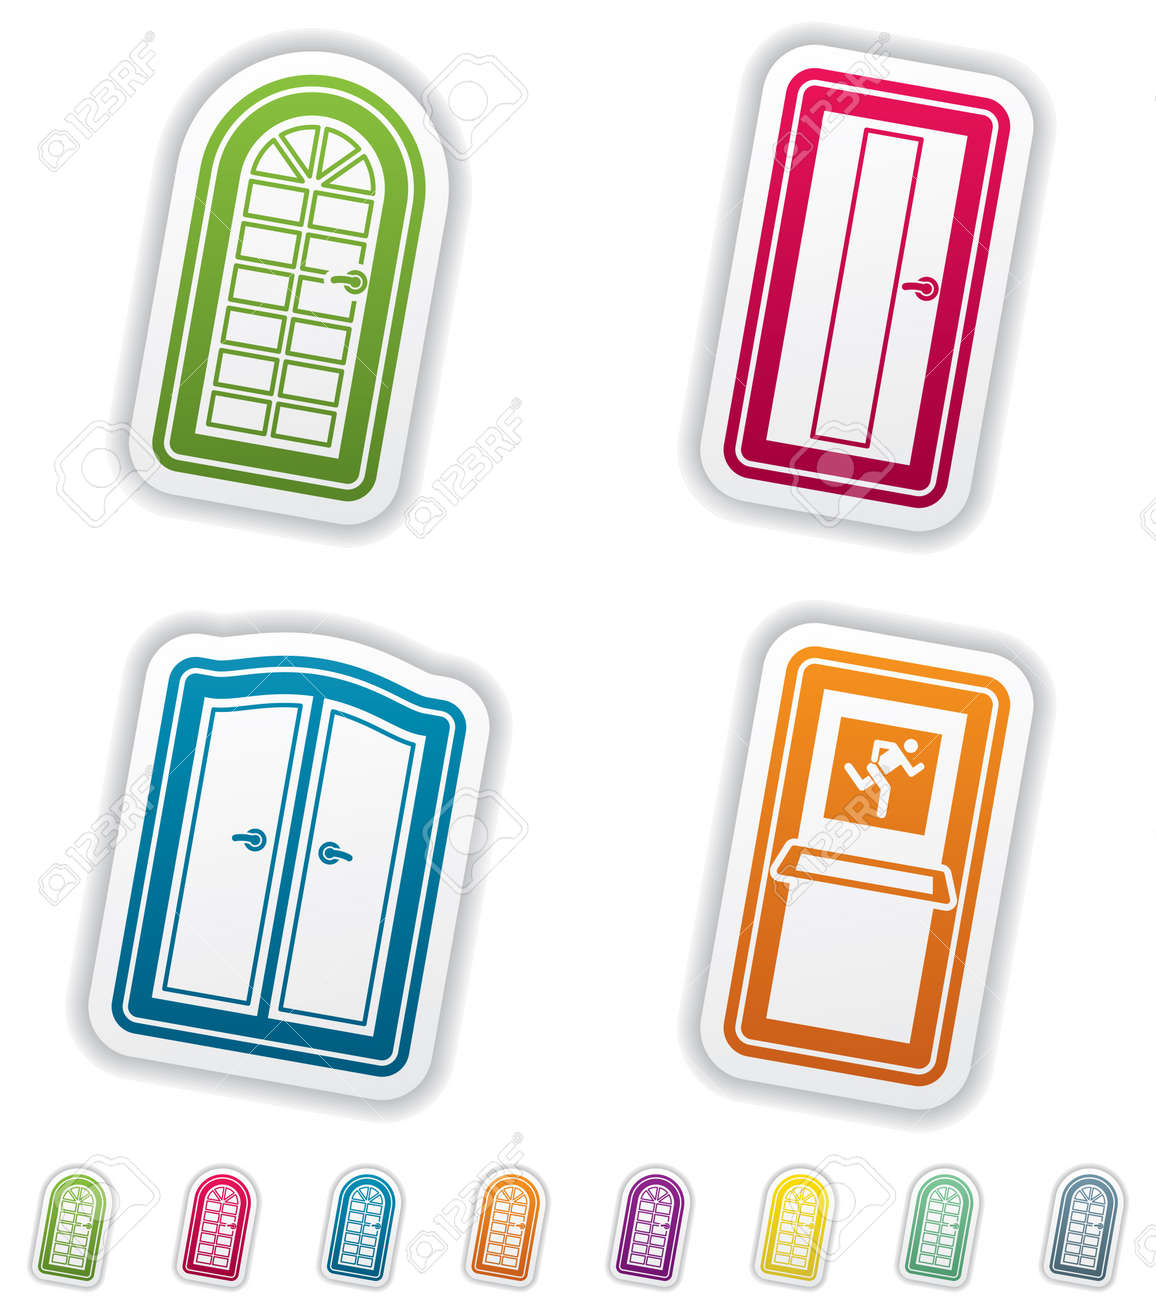 House related Objects Stock Vector - 12954190